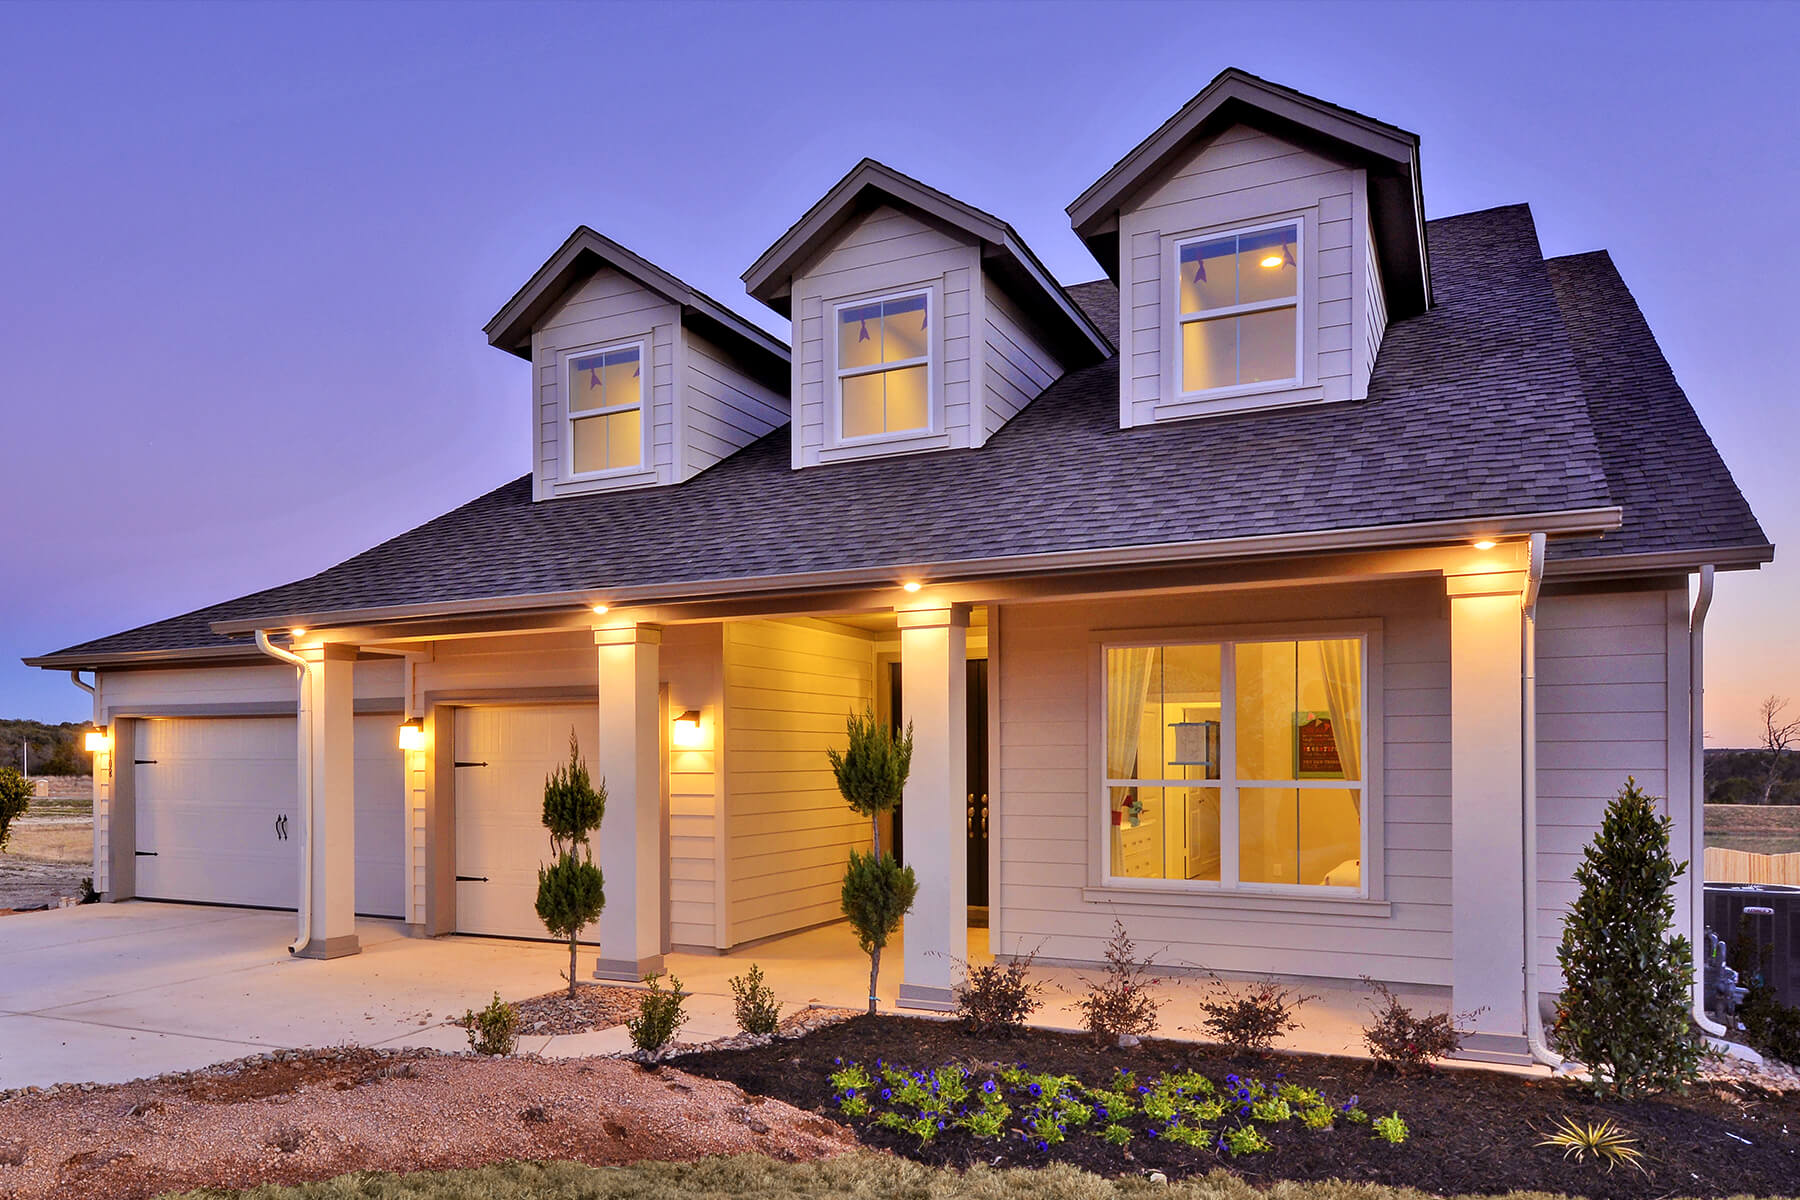 Orchard ridge homes home review for Liberty home builders